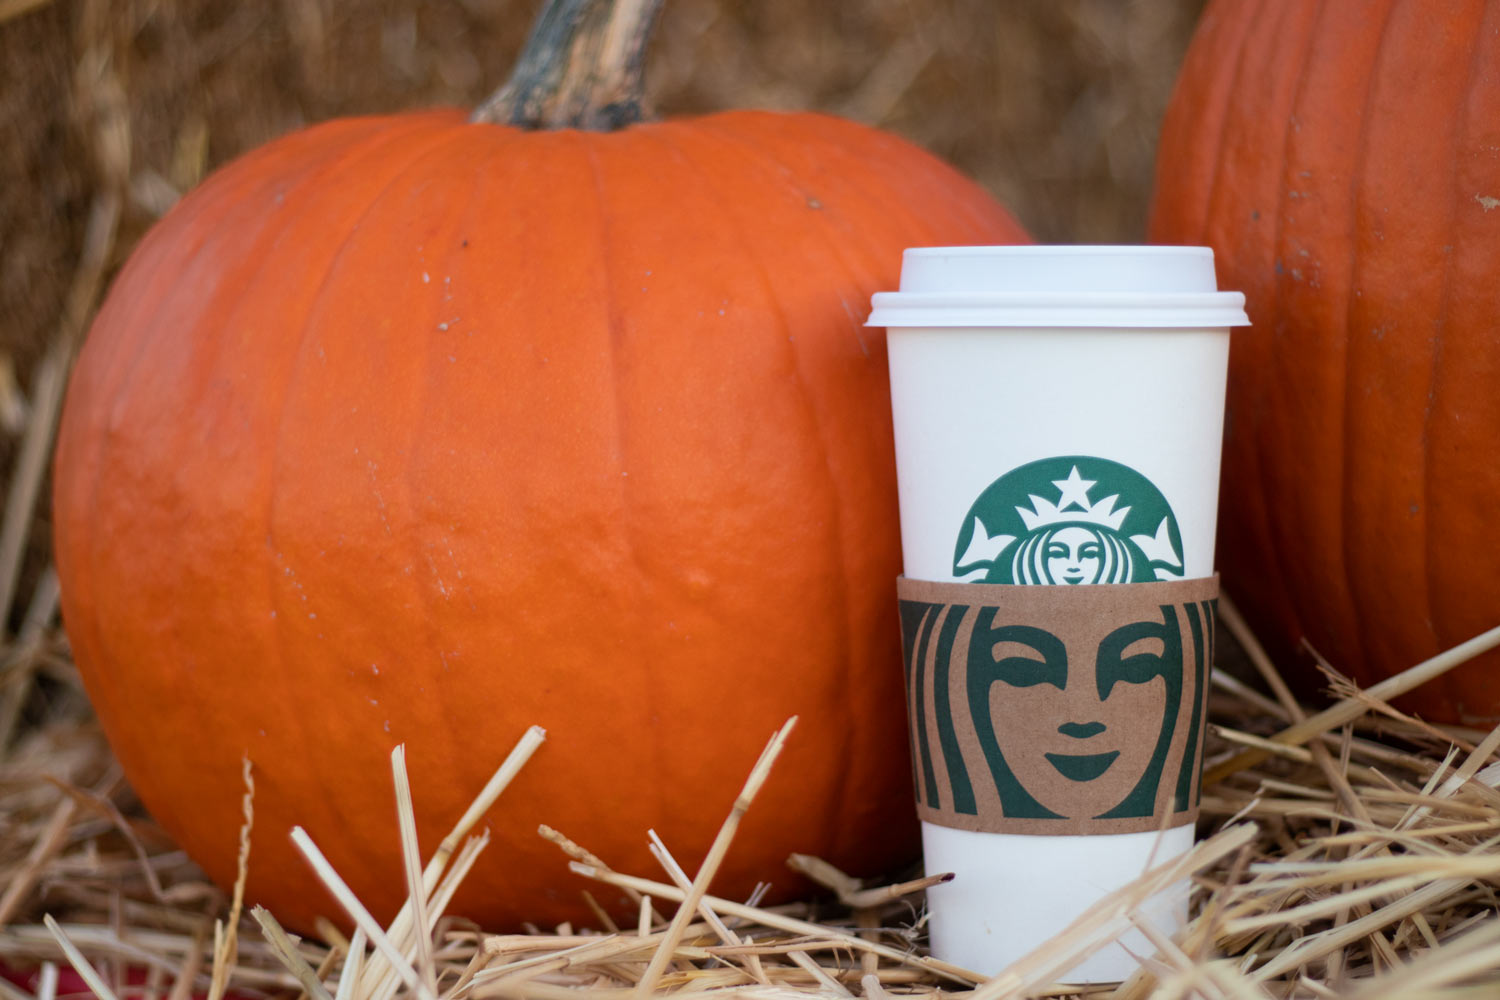 Photo illustration. The 2019 fall season sports three specialty drinks, from classics like the Pumpkin Spice Latte to newcomers like the Pumpkin Cream Cold Brew.